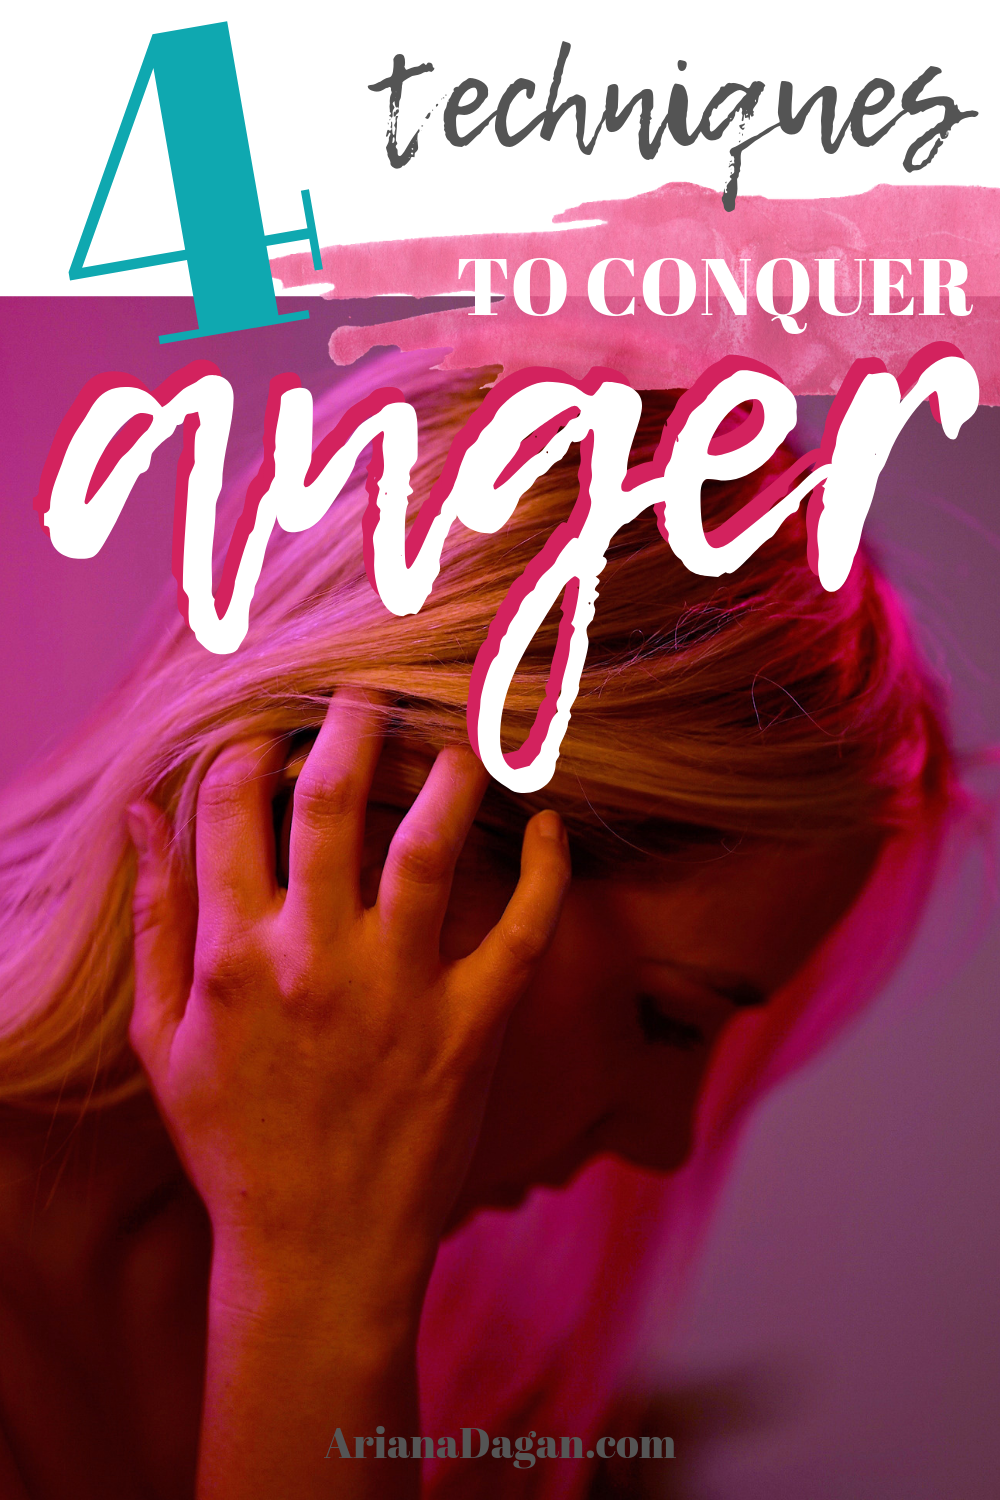 4 Techniques to Conquer Anger by Ariana Dagan